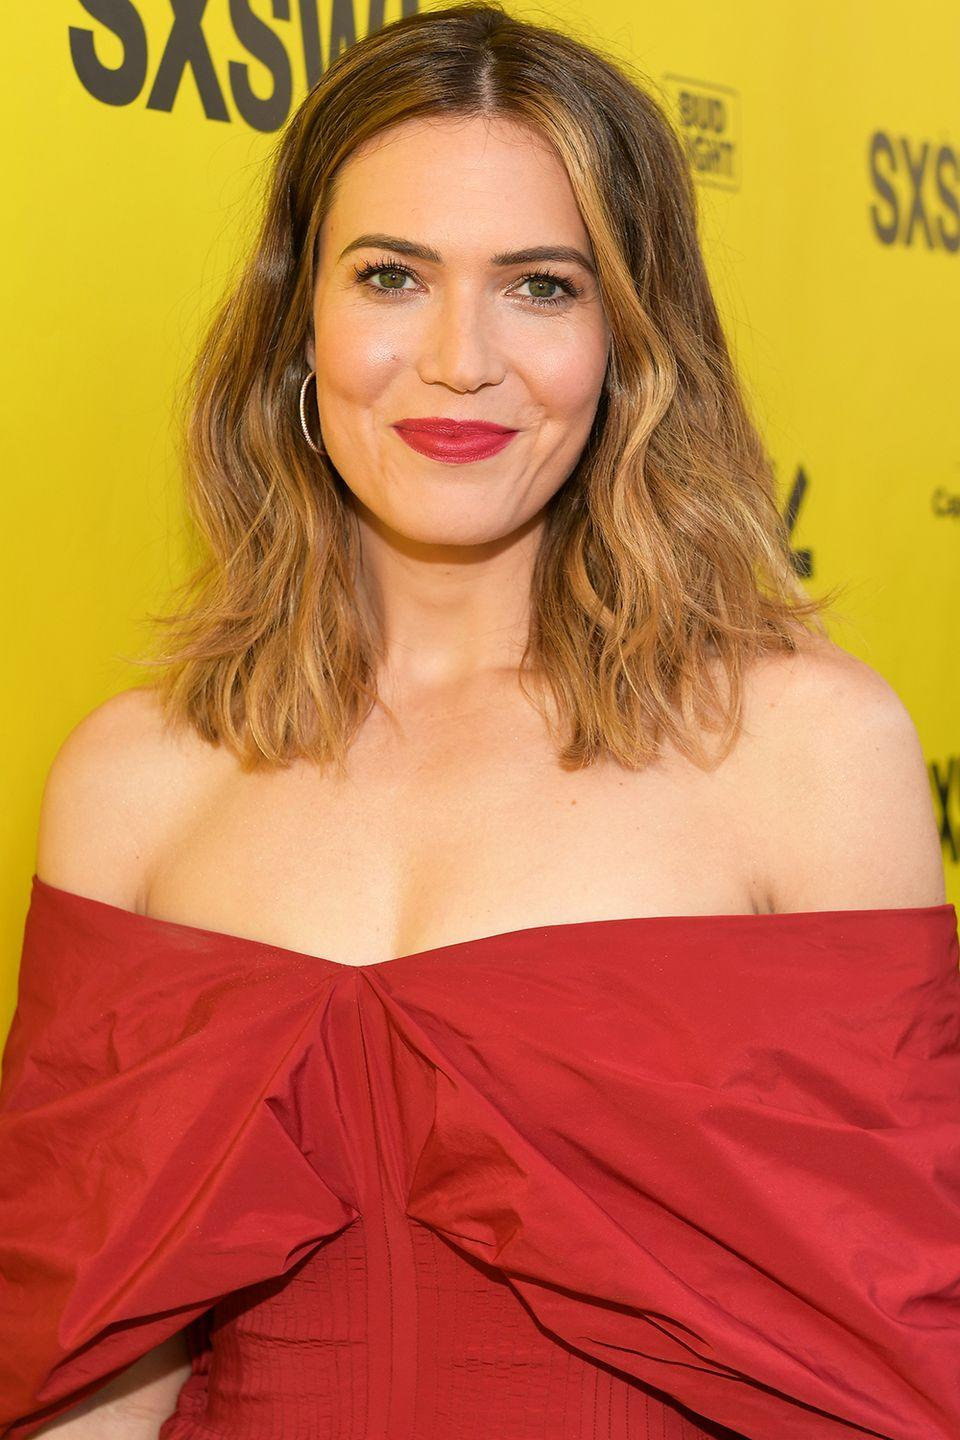 "<p><strong>Born</strong>: Amanda Leigh Moore</p><p>""I had never really owned my name,"" Mandy Moore explained in a 2009 interview with <em><a href=""http://www.cnn.com/2009/SHOWBIZ/Music/06/15/mandy.moore/index.html"" rel=""nofollow noopener"" target=""_blank"" data-ylk=""slk:CNN"" class=""link rapid-noclick-resp"">CNN</a></em>. ""It was just synonymous with my parents being mad at me."" And can you blame her for wanting to be Mandy Moore? It has a ring to it.</p>"